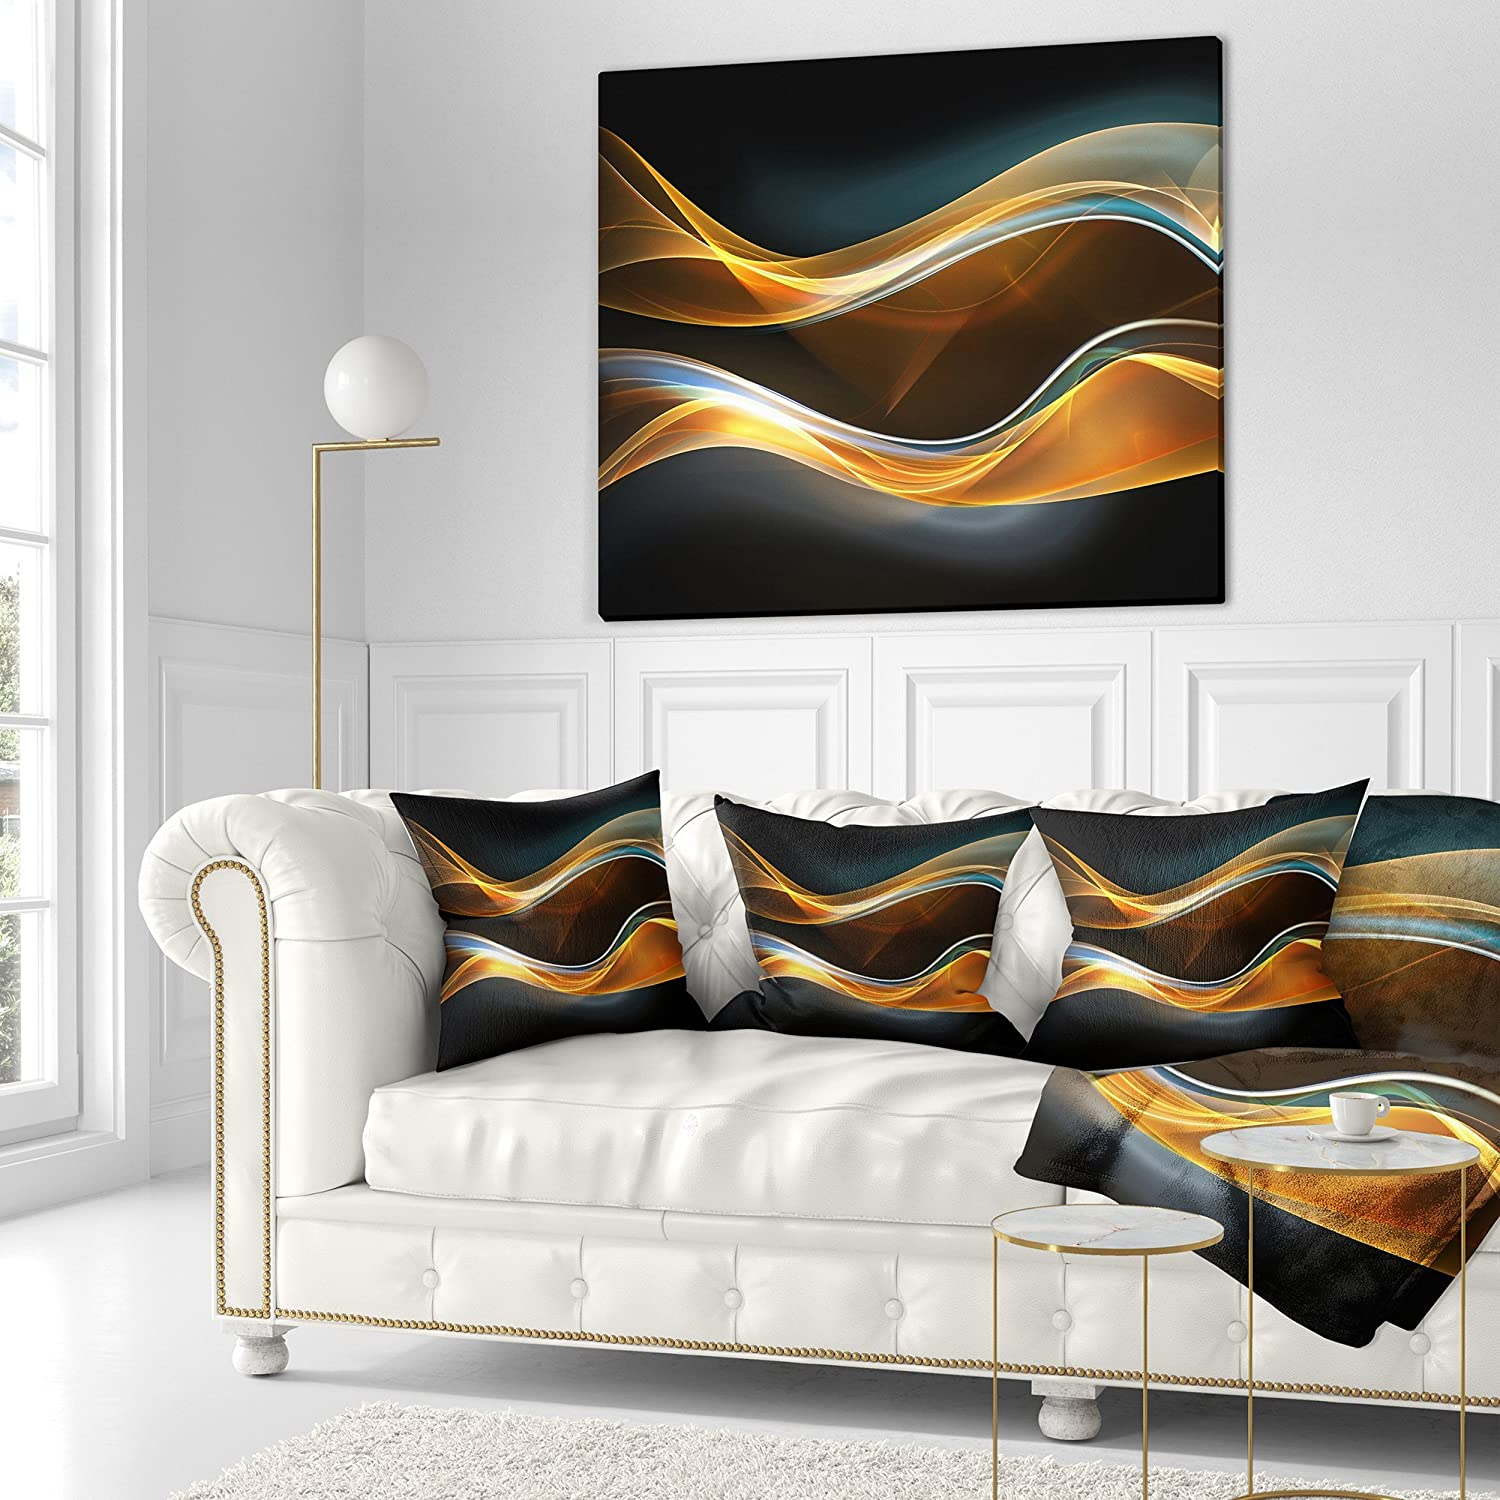 in Designart CU8220-26-26 3D Gold Waves in Black Abstract Cushion Cover for Living Room Sofa Throw Pillow 26 in Insert Printed On Both Side x 26 in